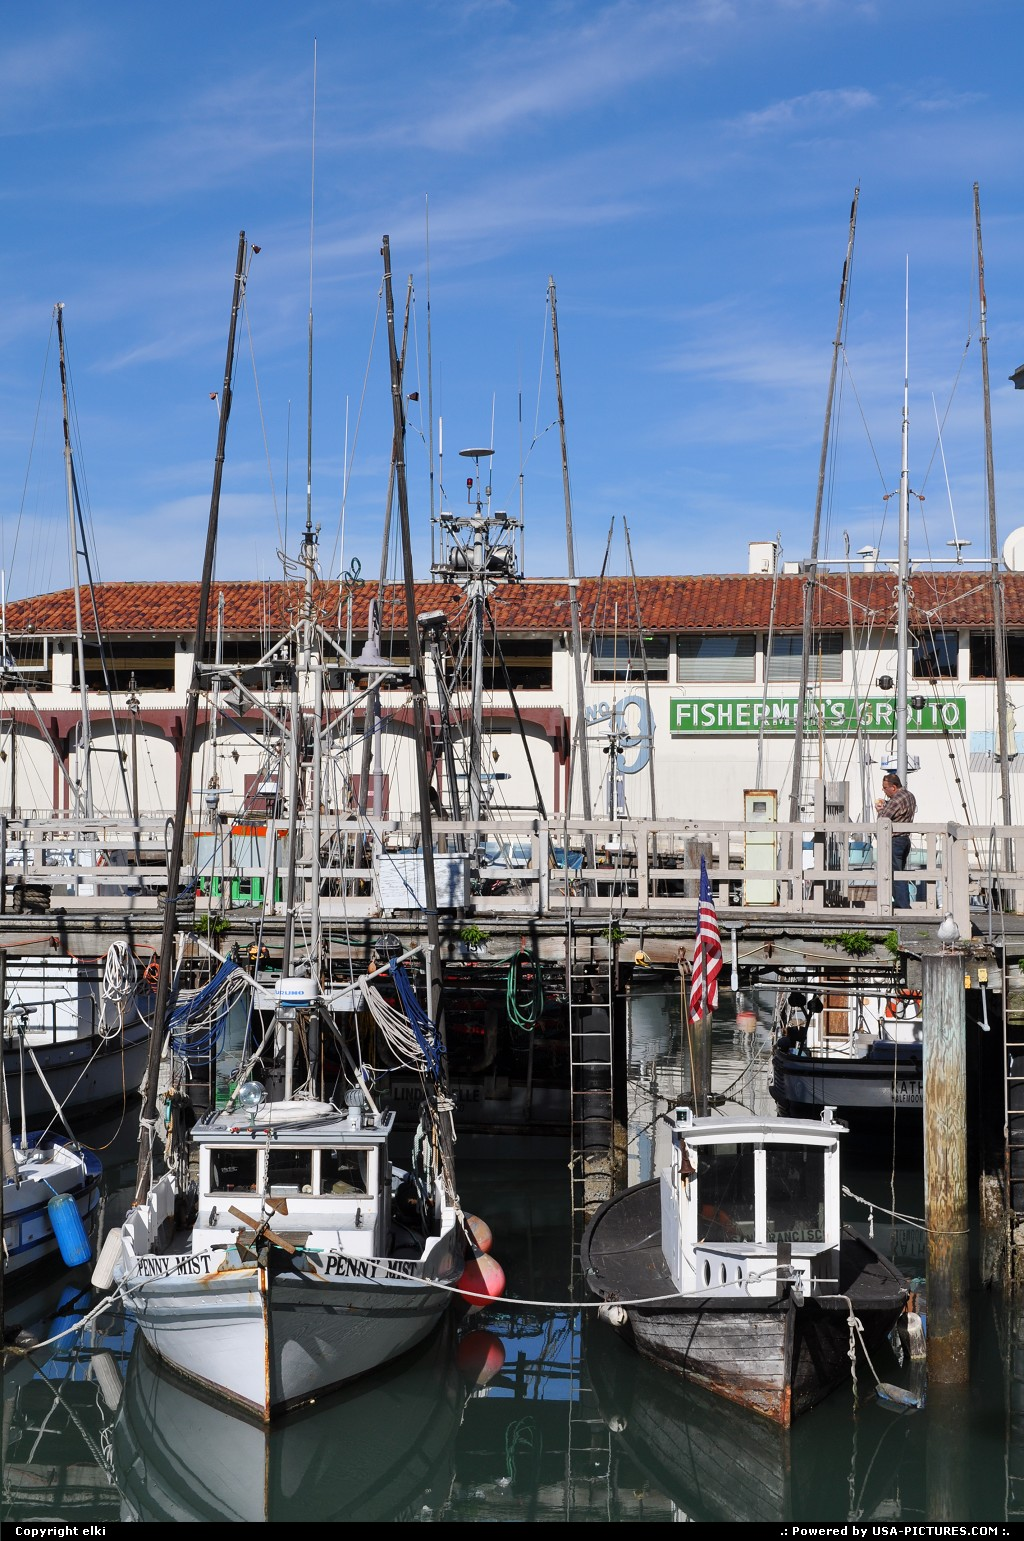 Picture by elki:San FranciscoCaliforniaFisherman wharf